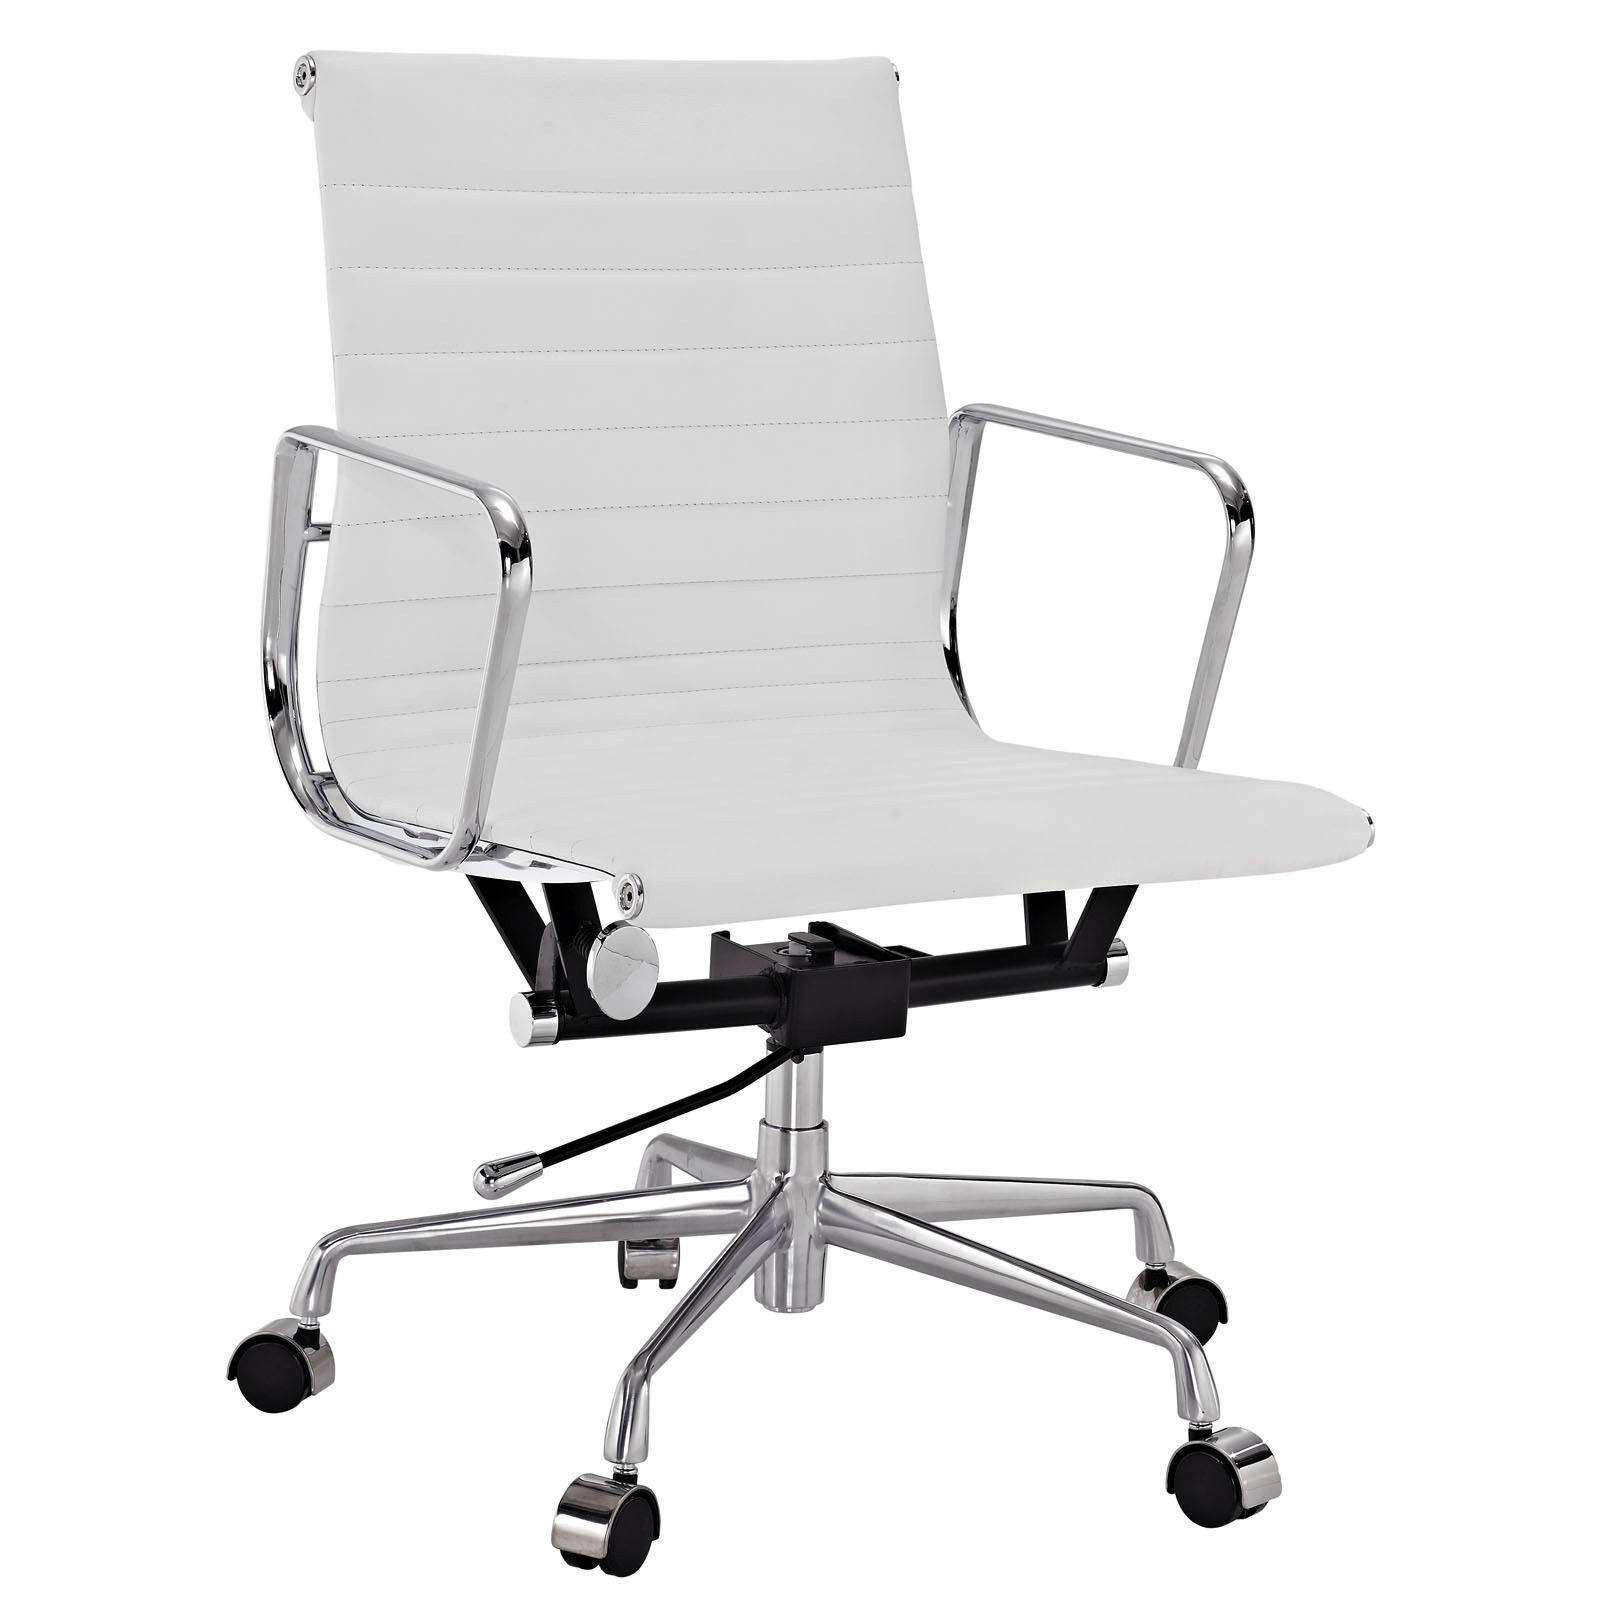 Office Chair Styles Eames Office Chair Aluminum Management Style Office